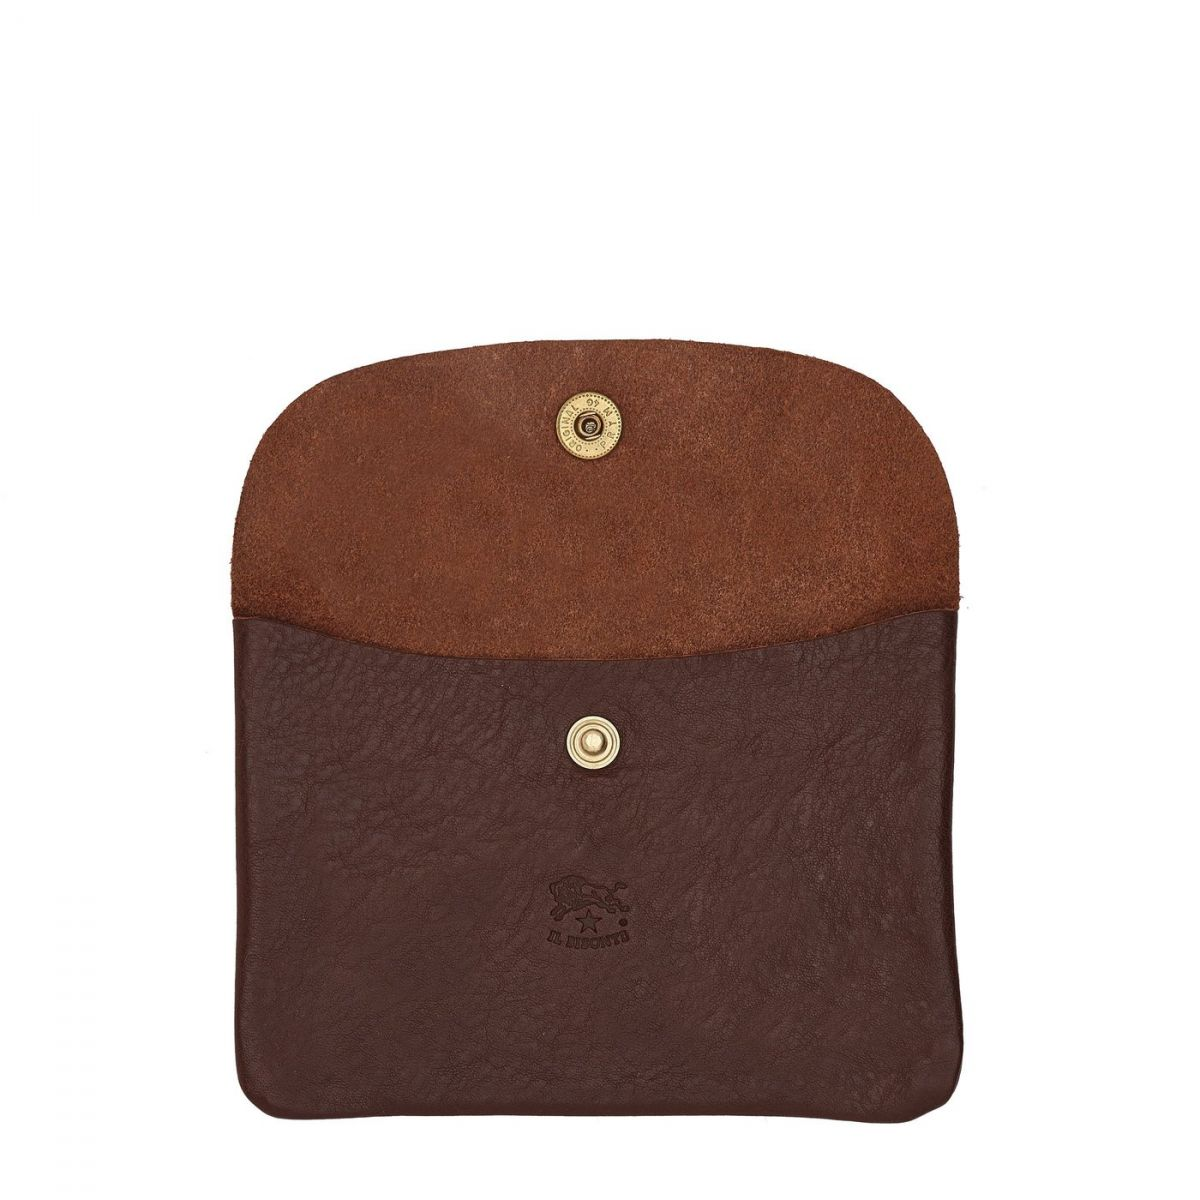 Case  in Cowhide Double Leather SCA008 color Brown | Details